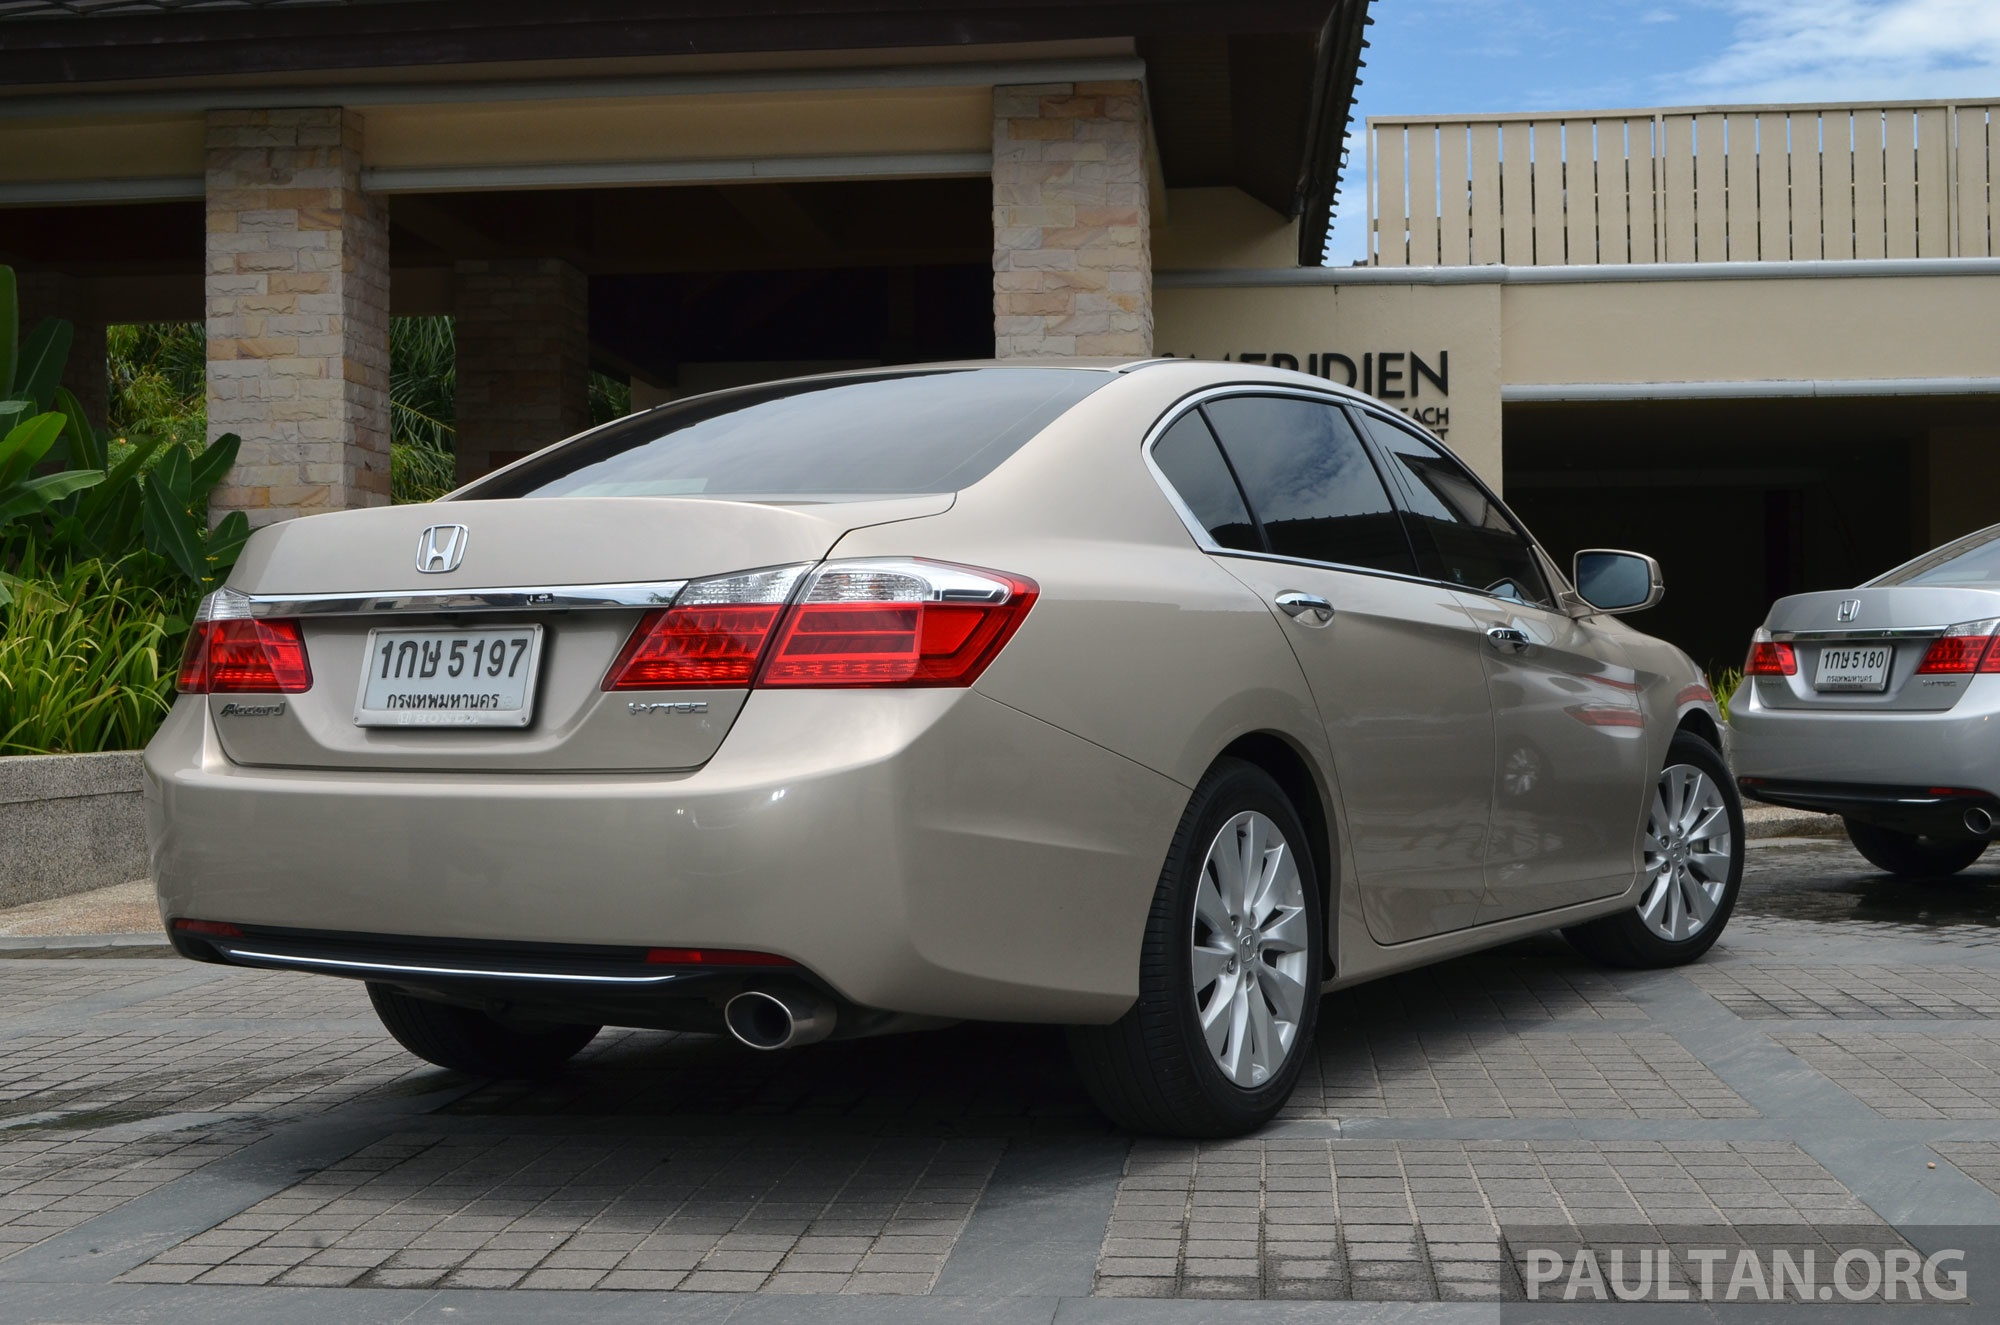 Driven honda accord 2 0 and 2 4 tested in thailand image for Honda accord 2 4